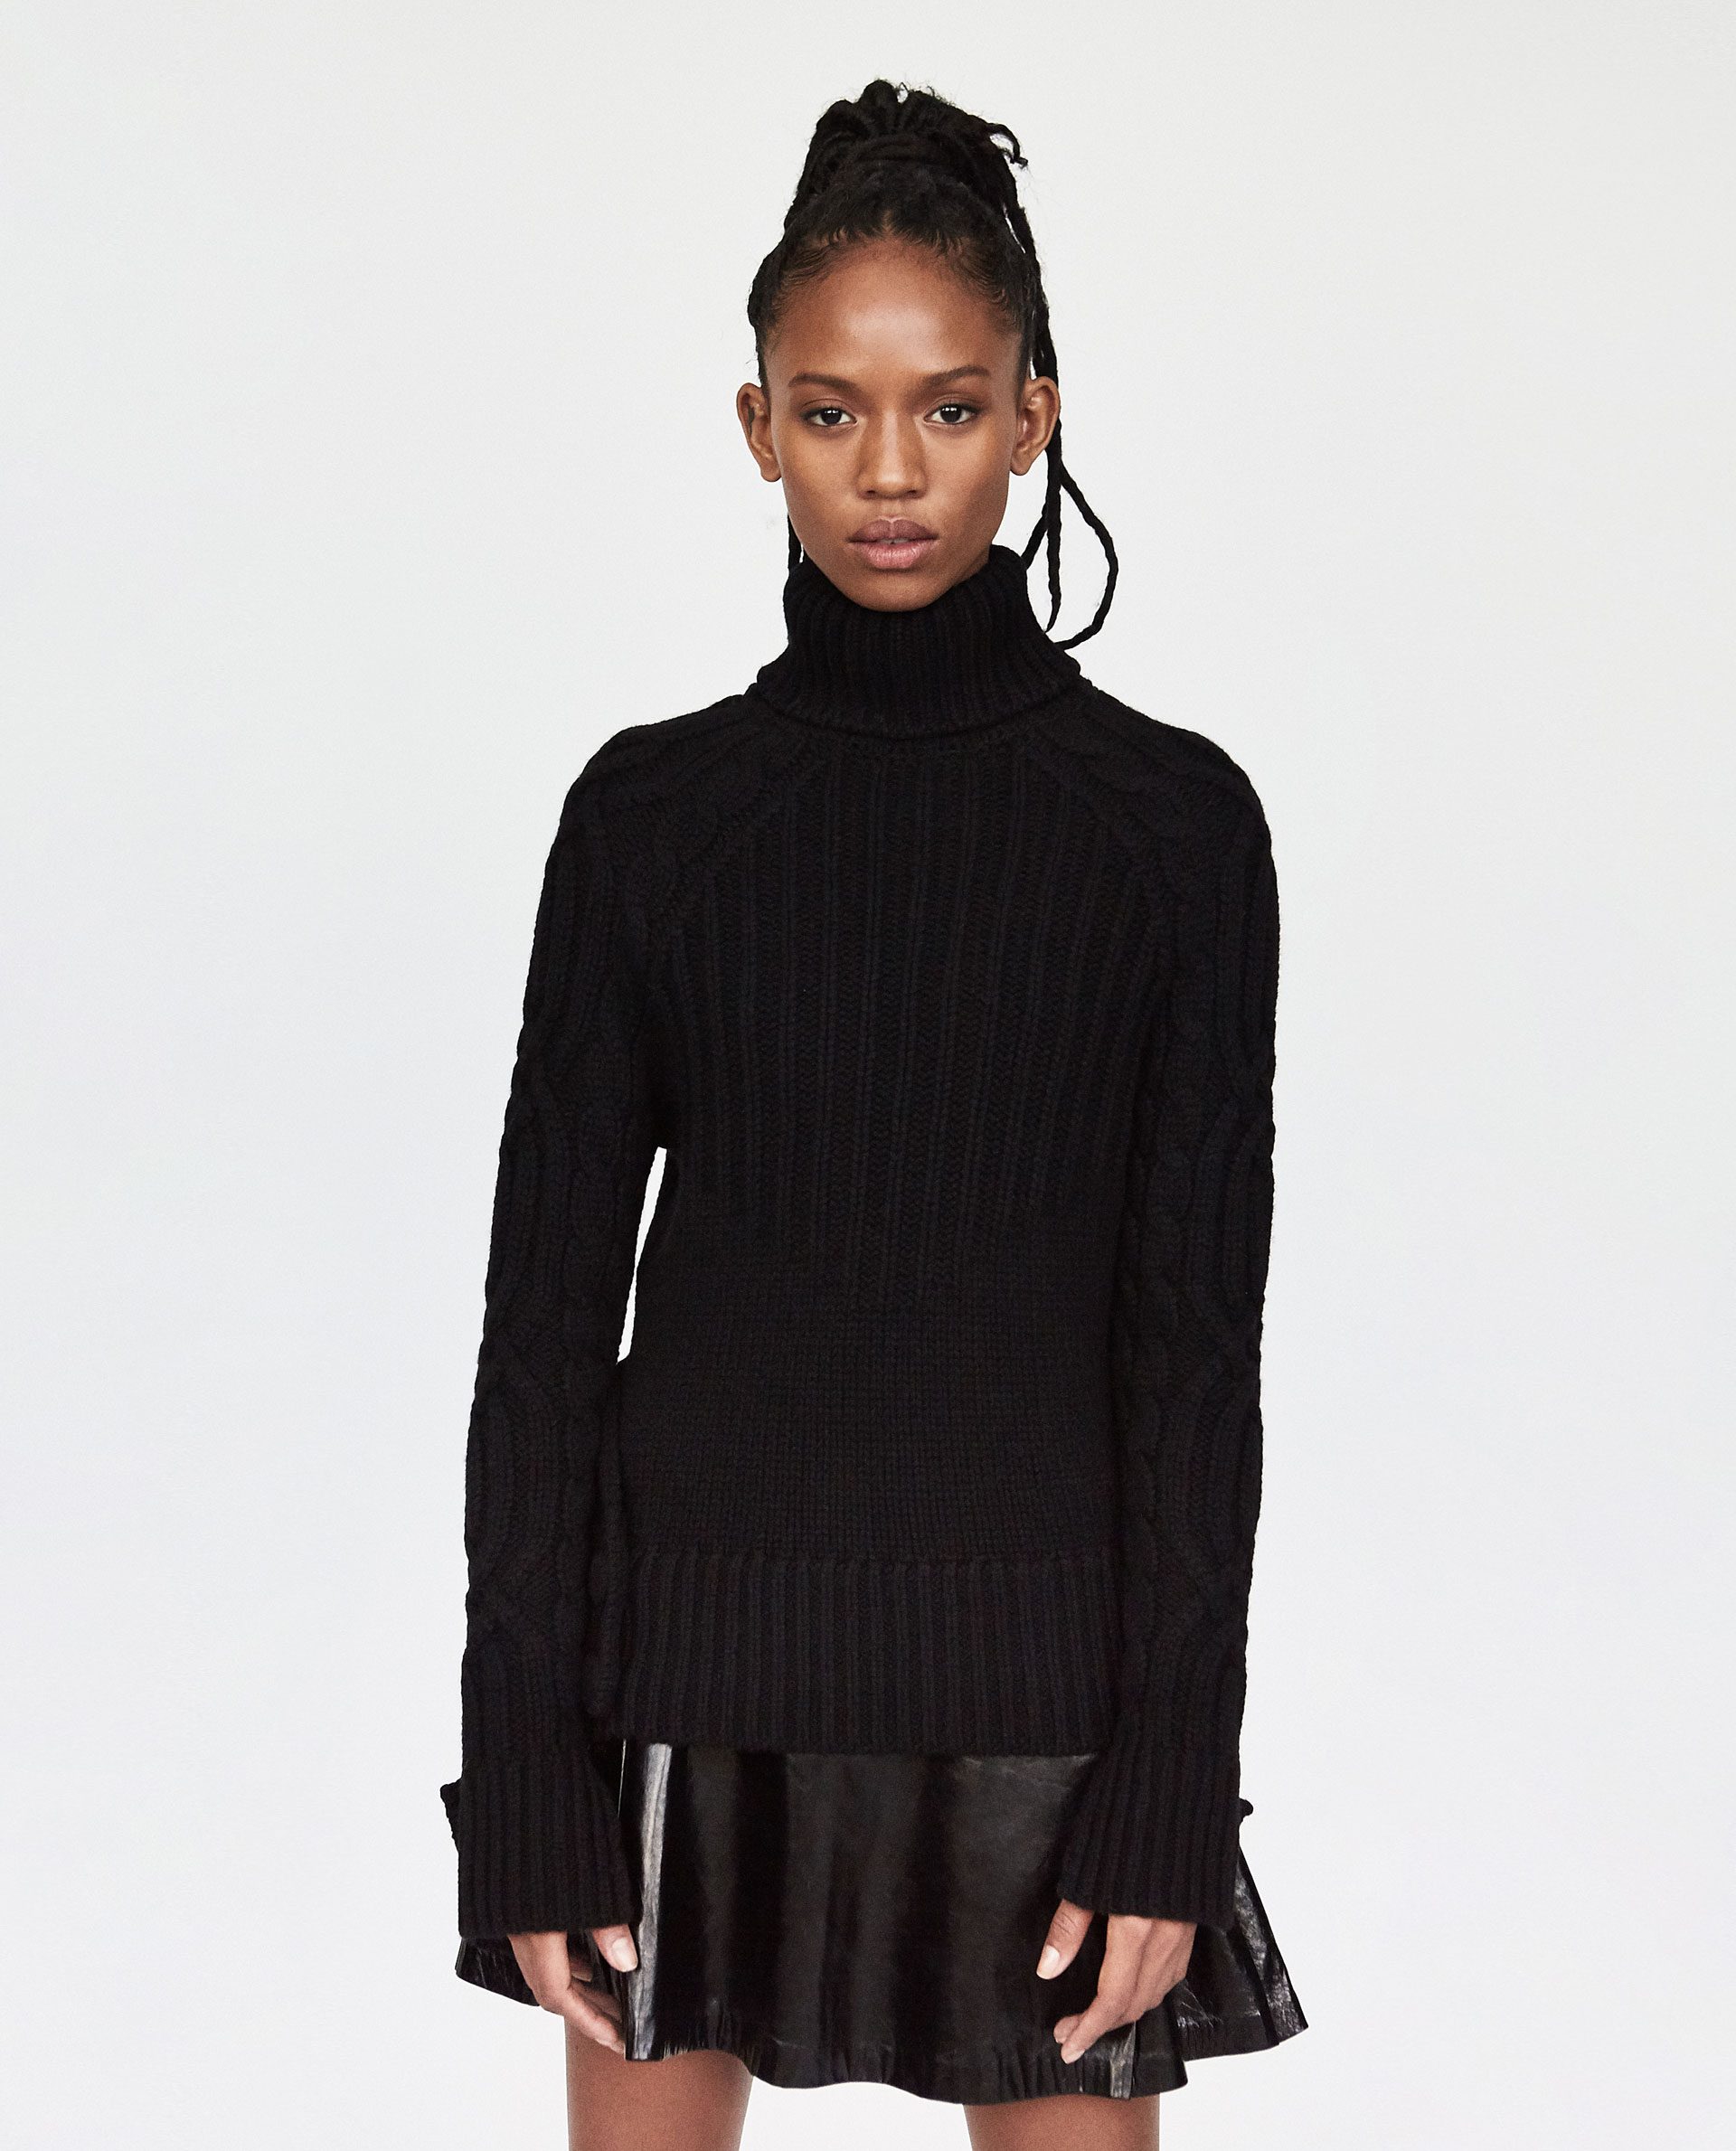 Zara, Combined Cashmere Cable-knit sweater - £159